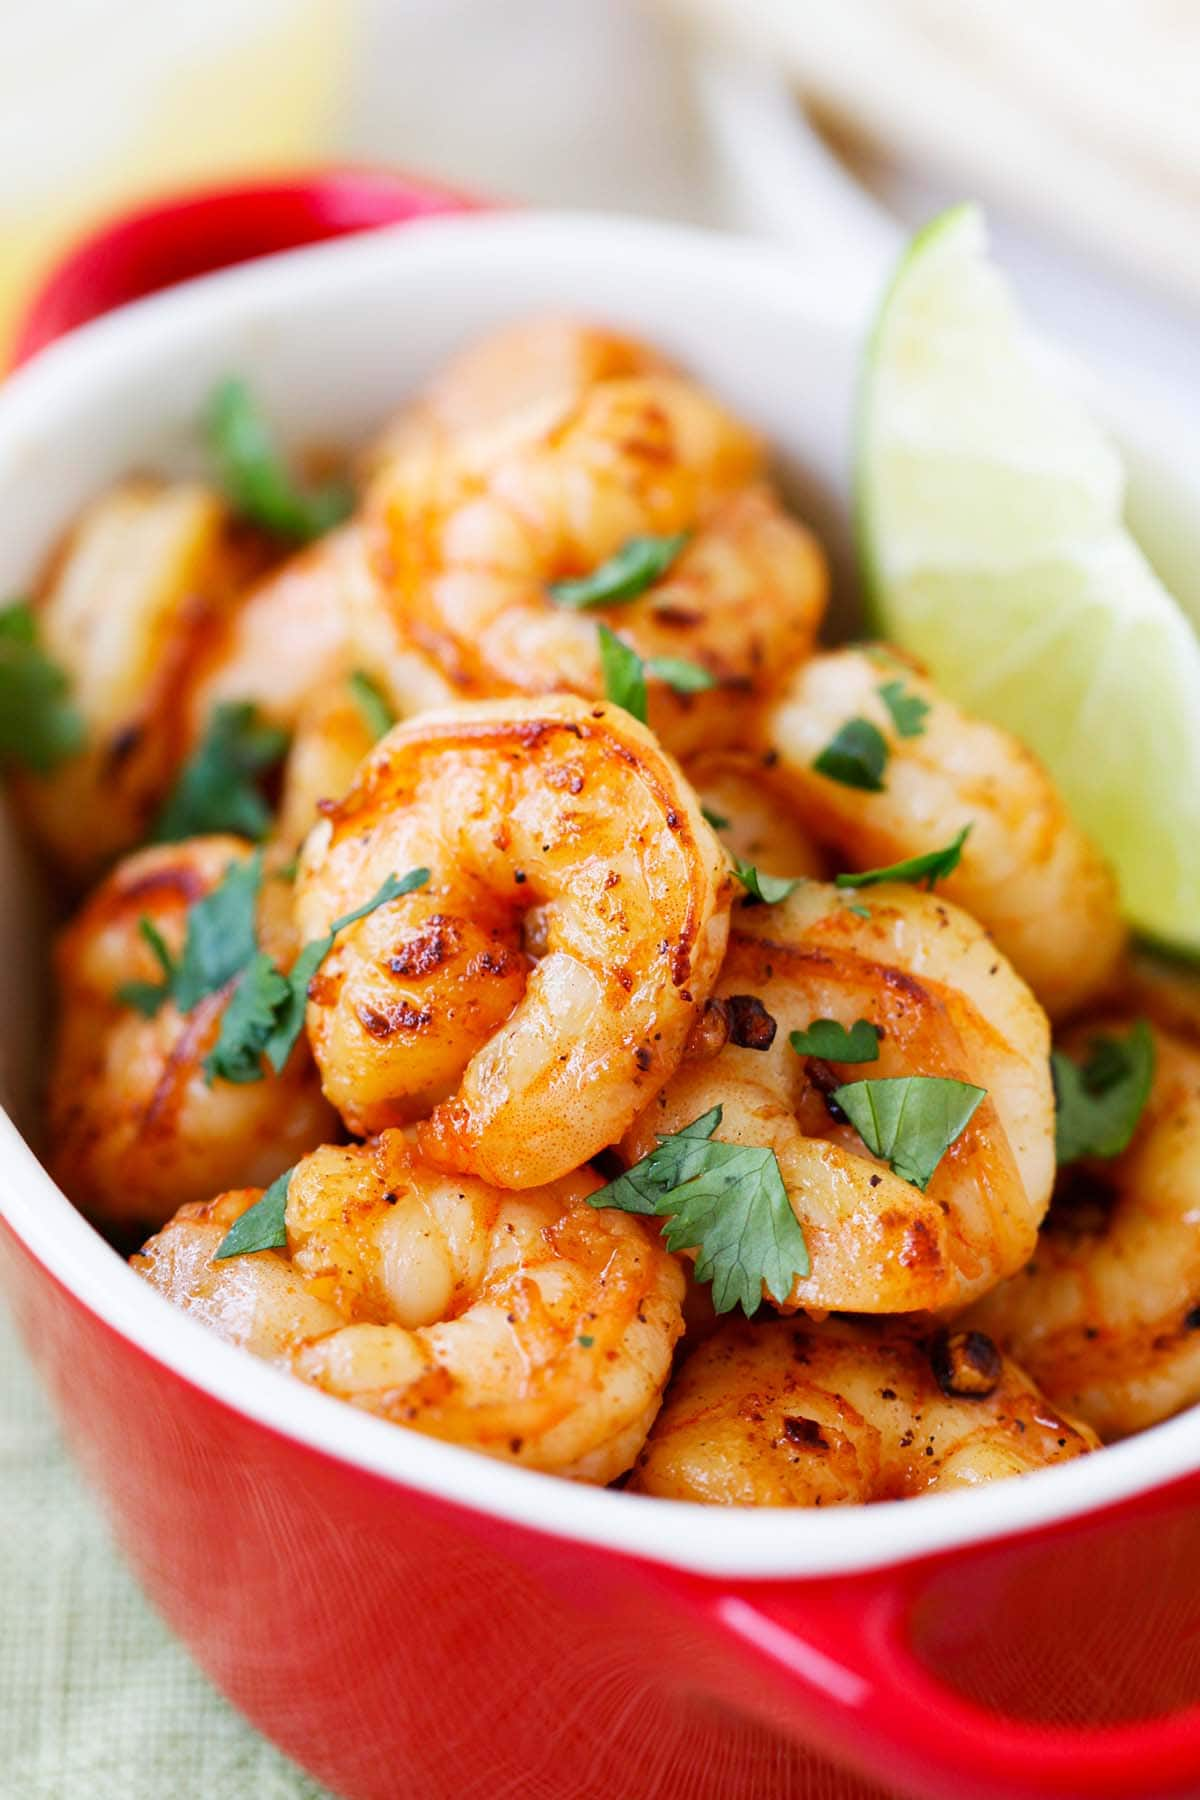 Tequila lime shrimp in a serving dish.